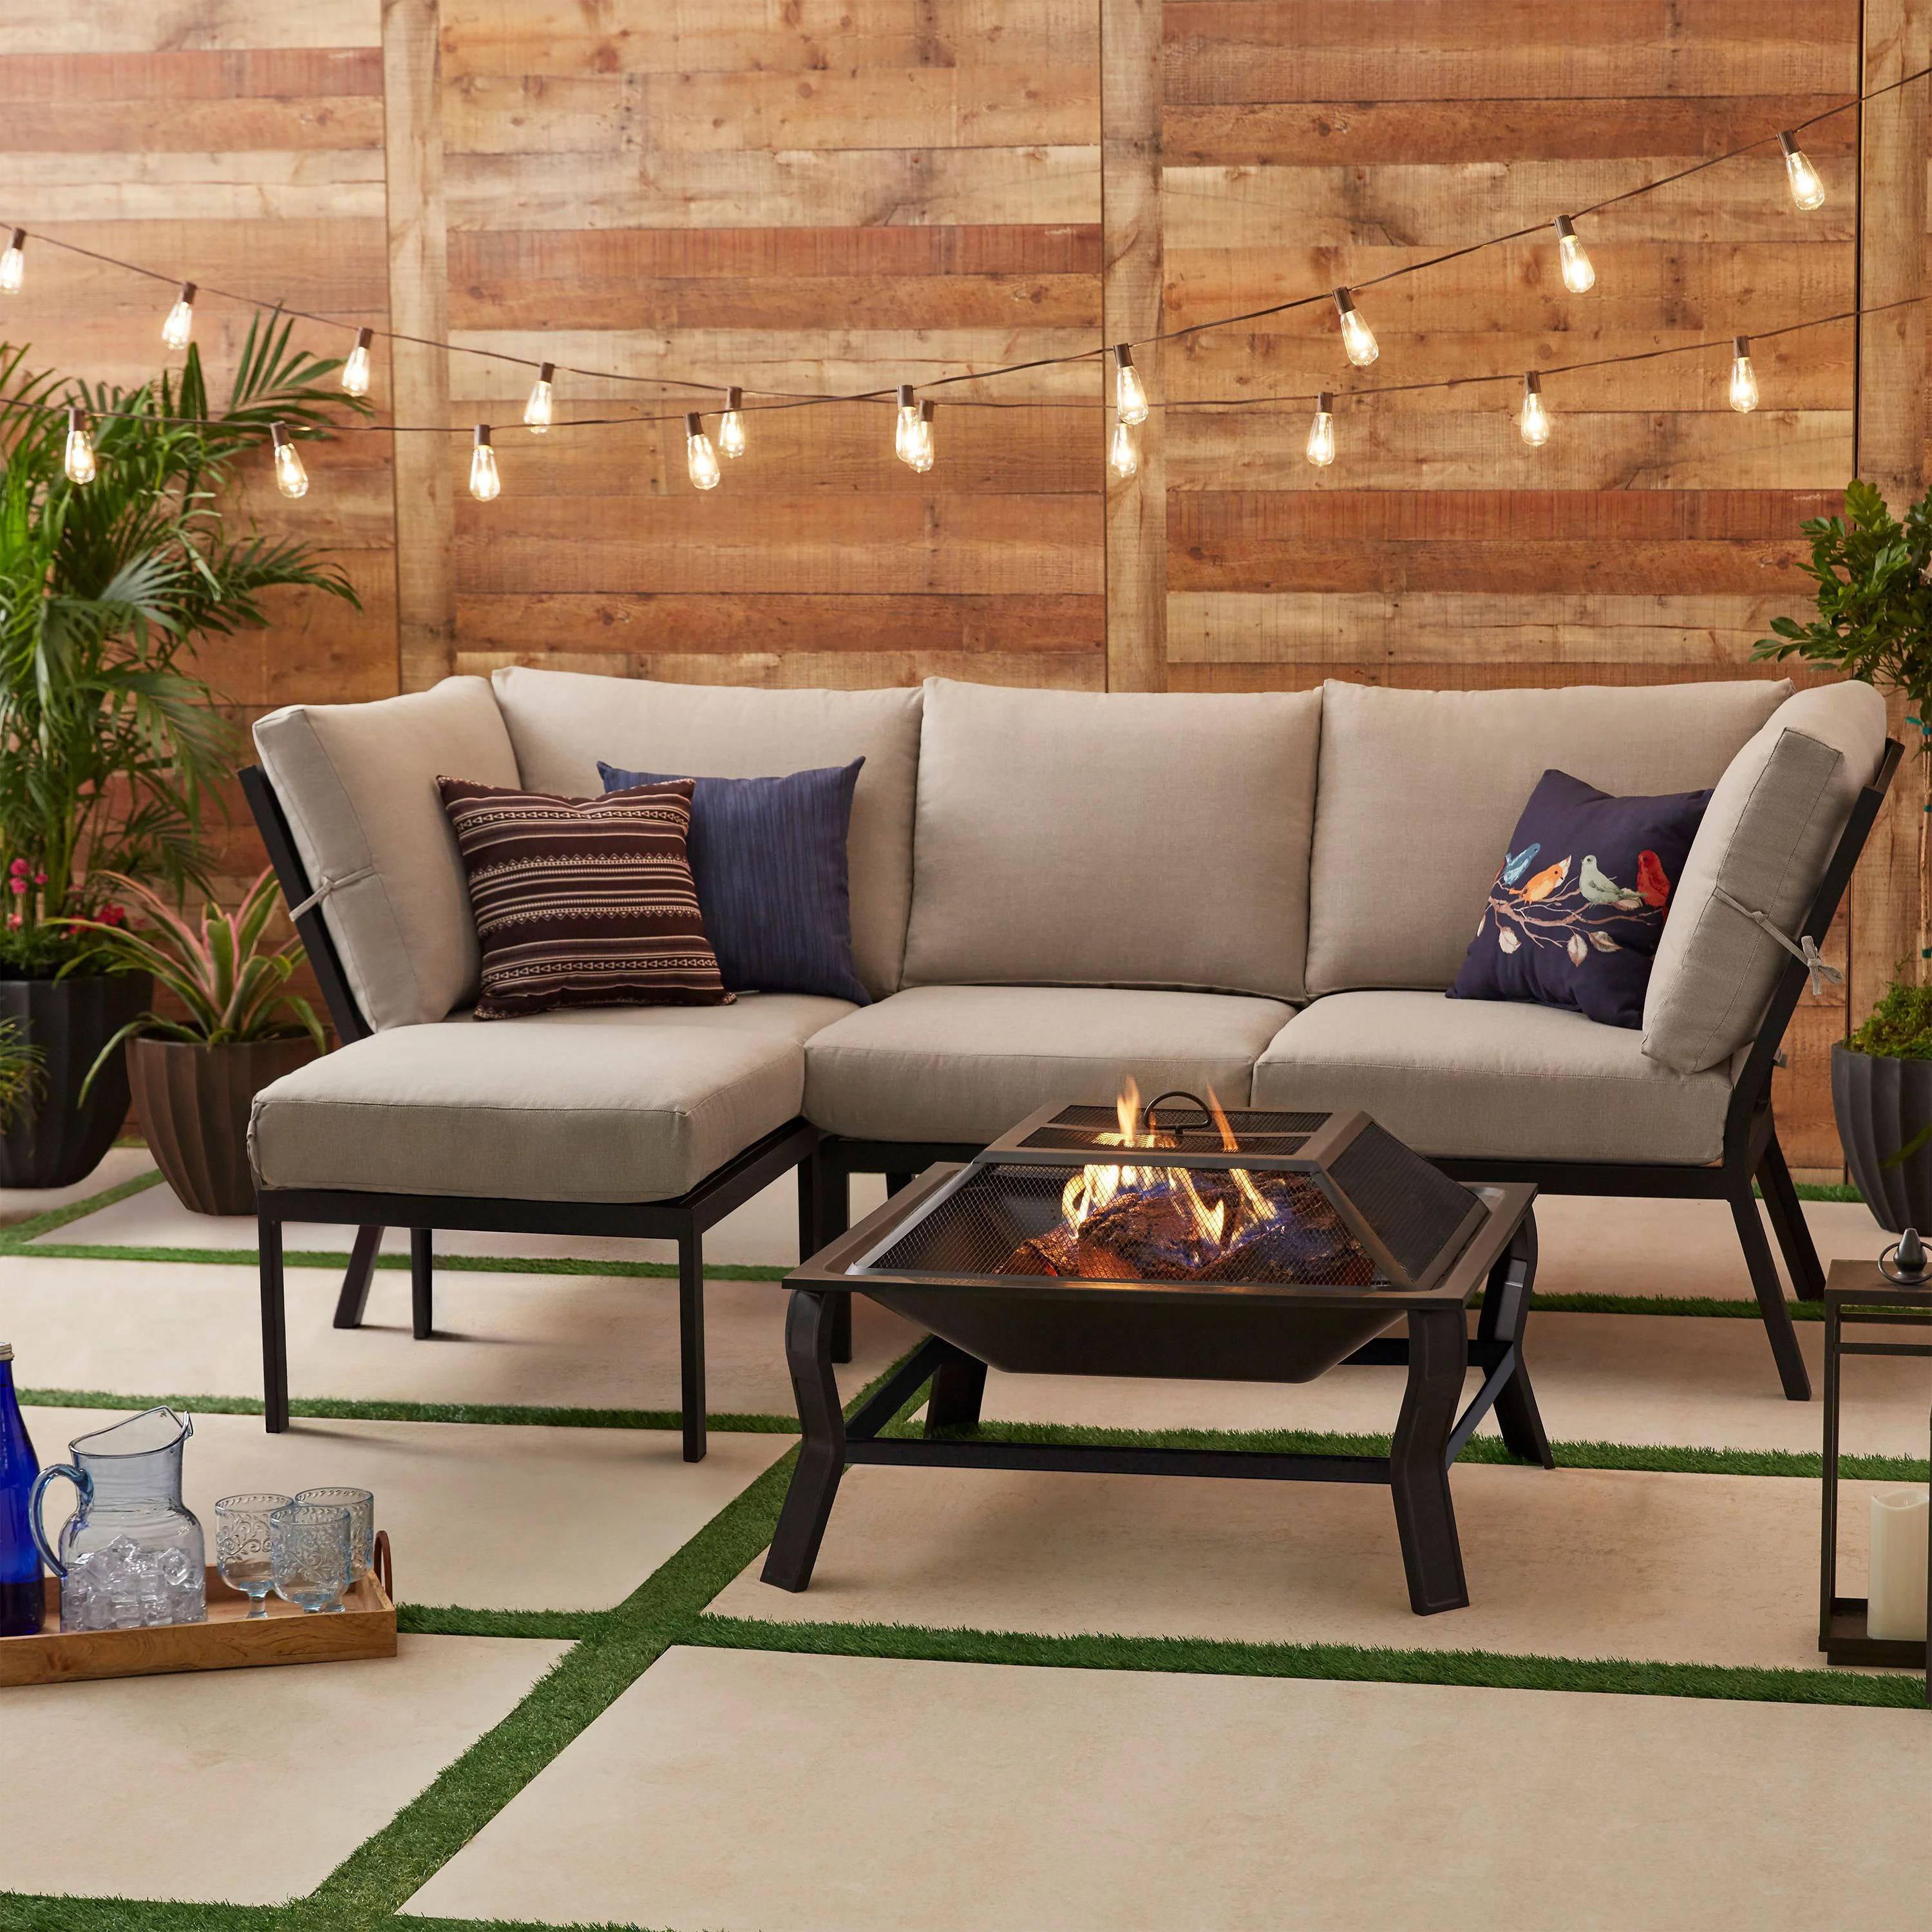 mainstays greyson square 4 piece outdoor patio sectional tan cushions and patio cover walmart com